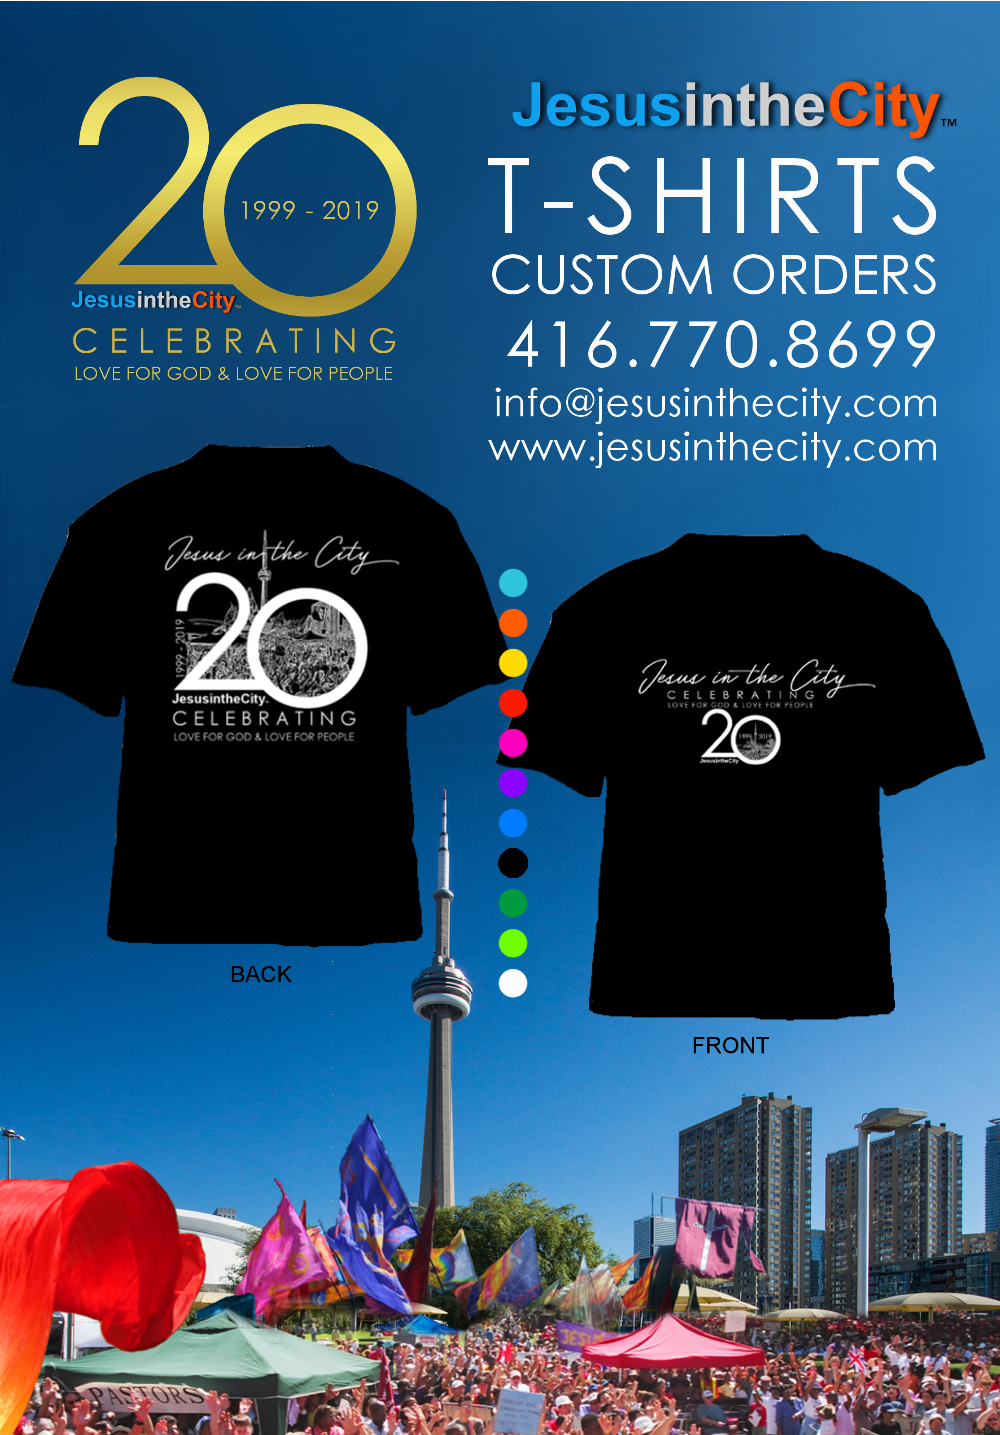 2019 T-shirt Promotional